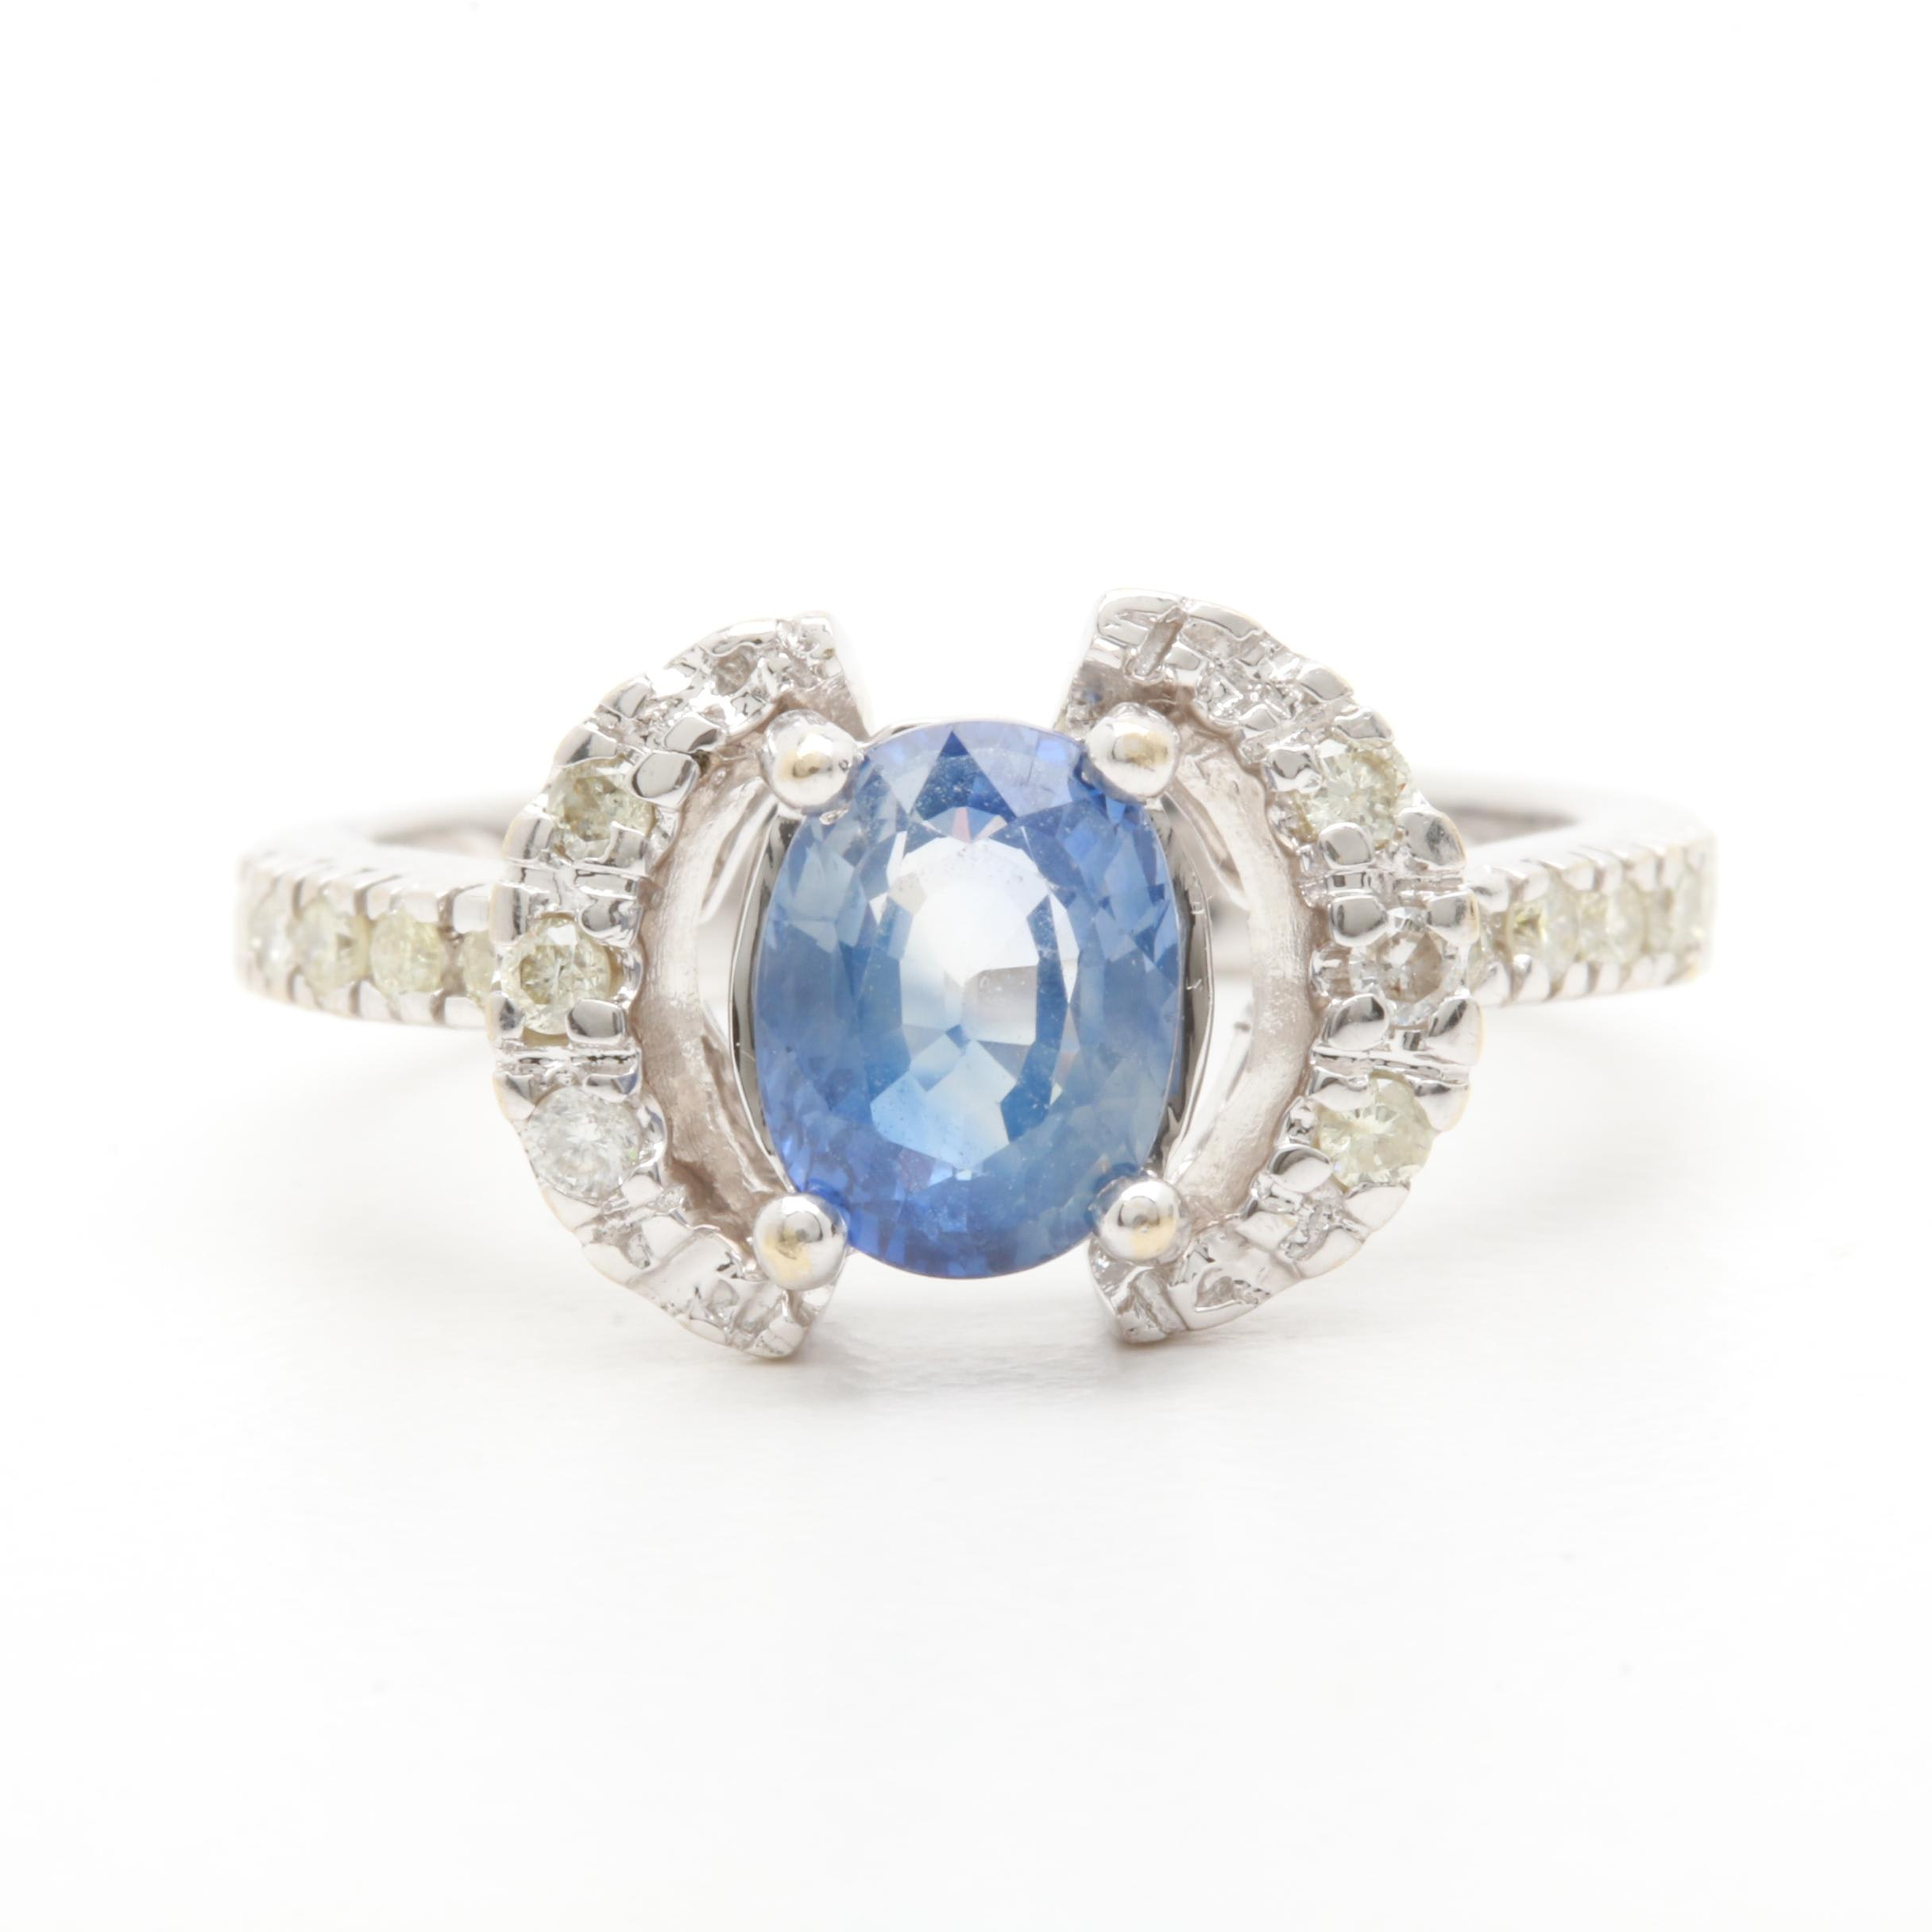 18K White Gold 1.50 CT Sapphire and Diamond Ring